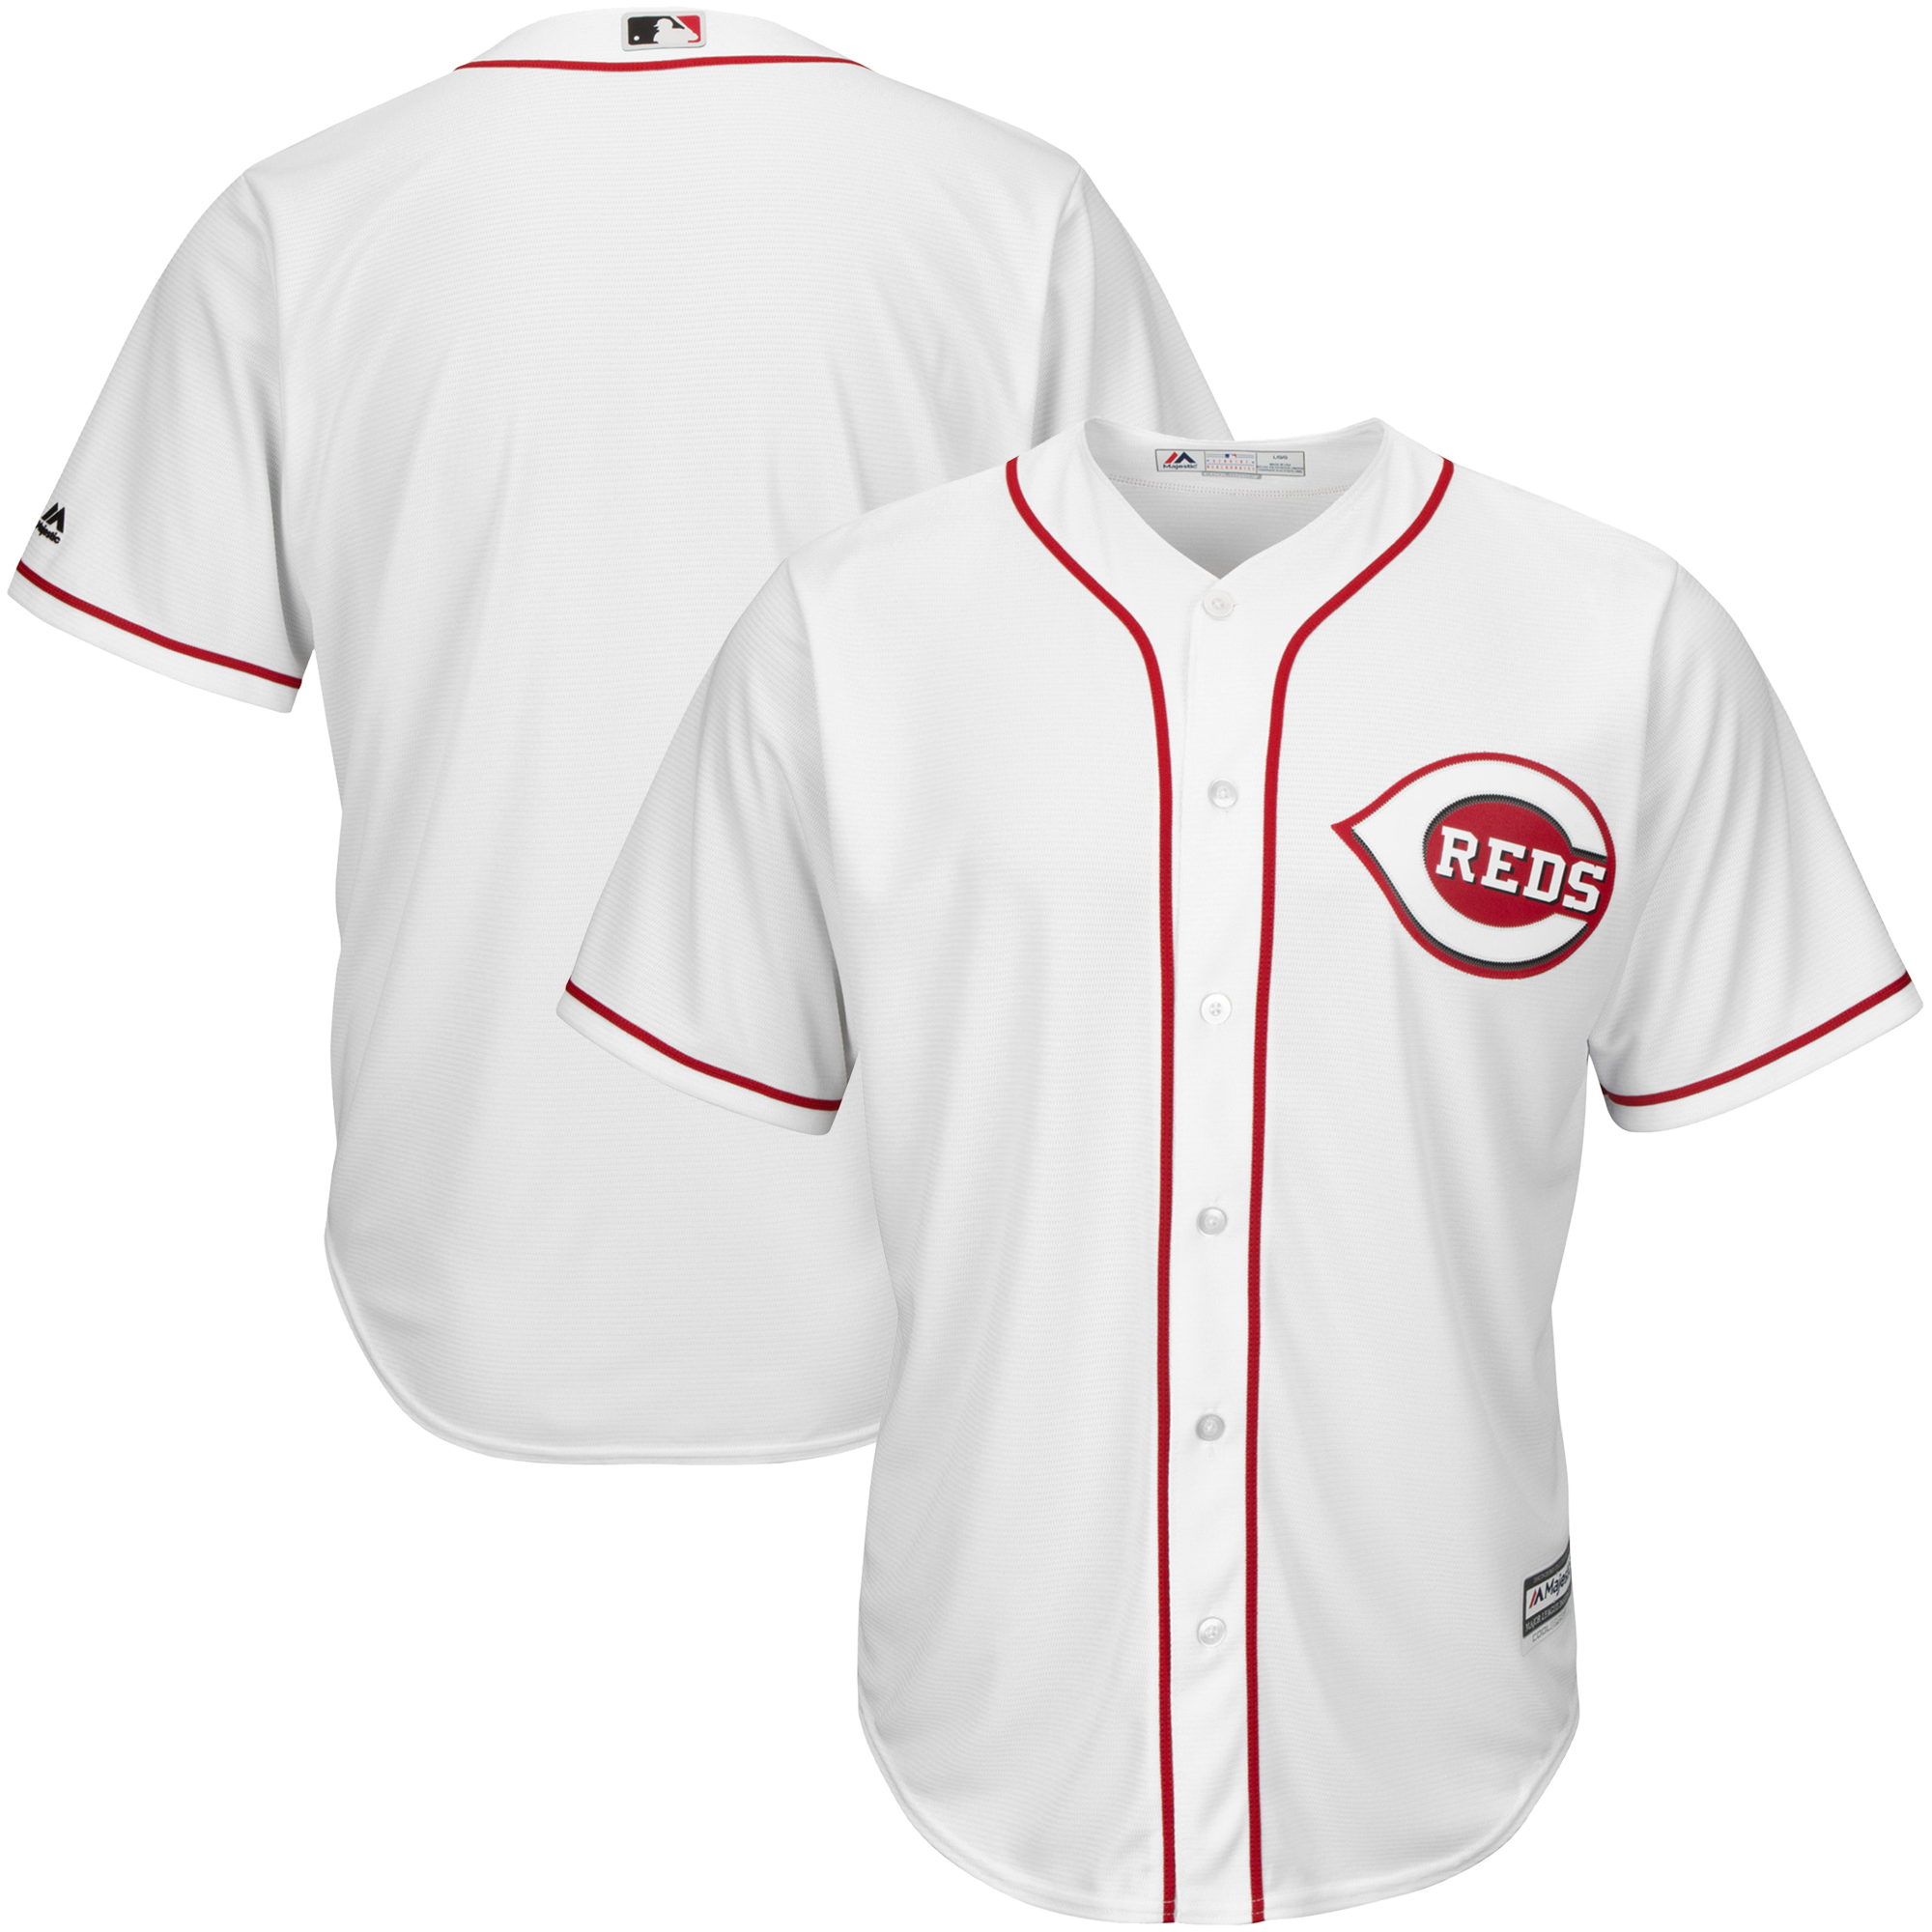 Men's Majestic White Cincinnati Reds Cool Base Jersey by